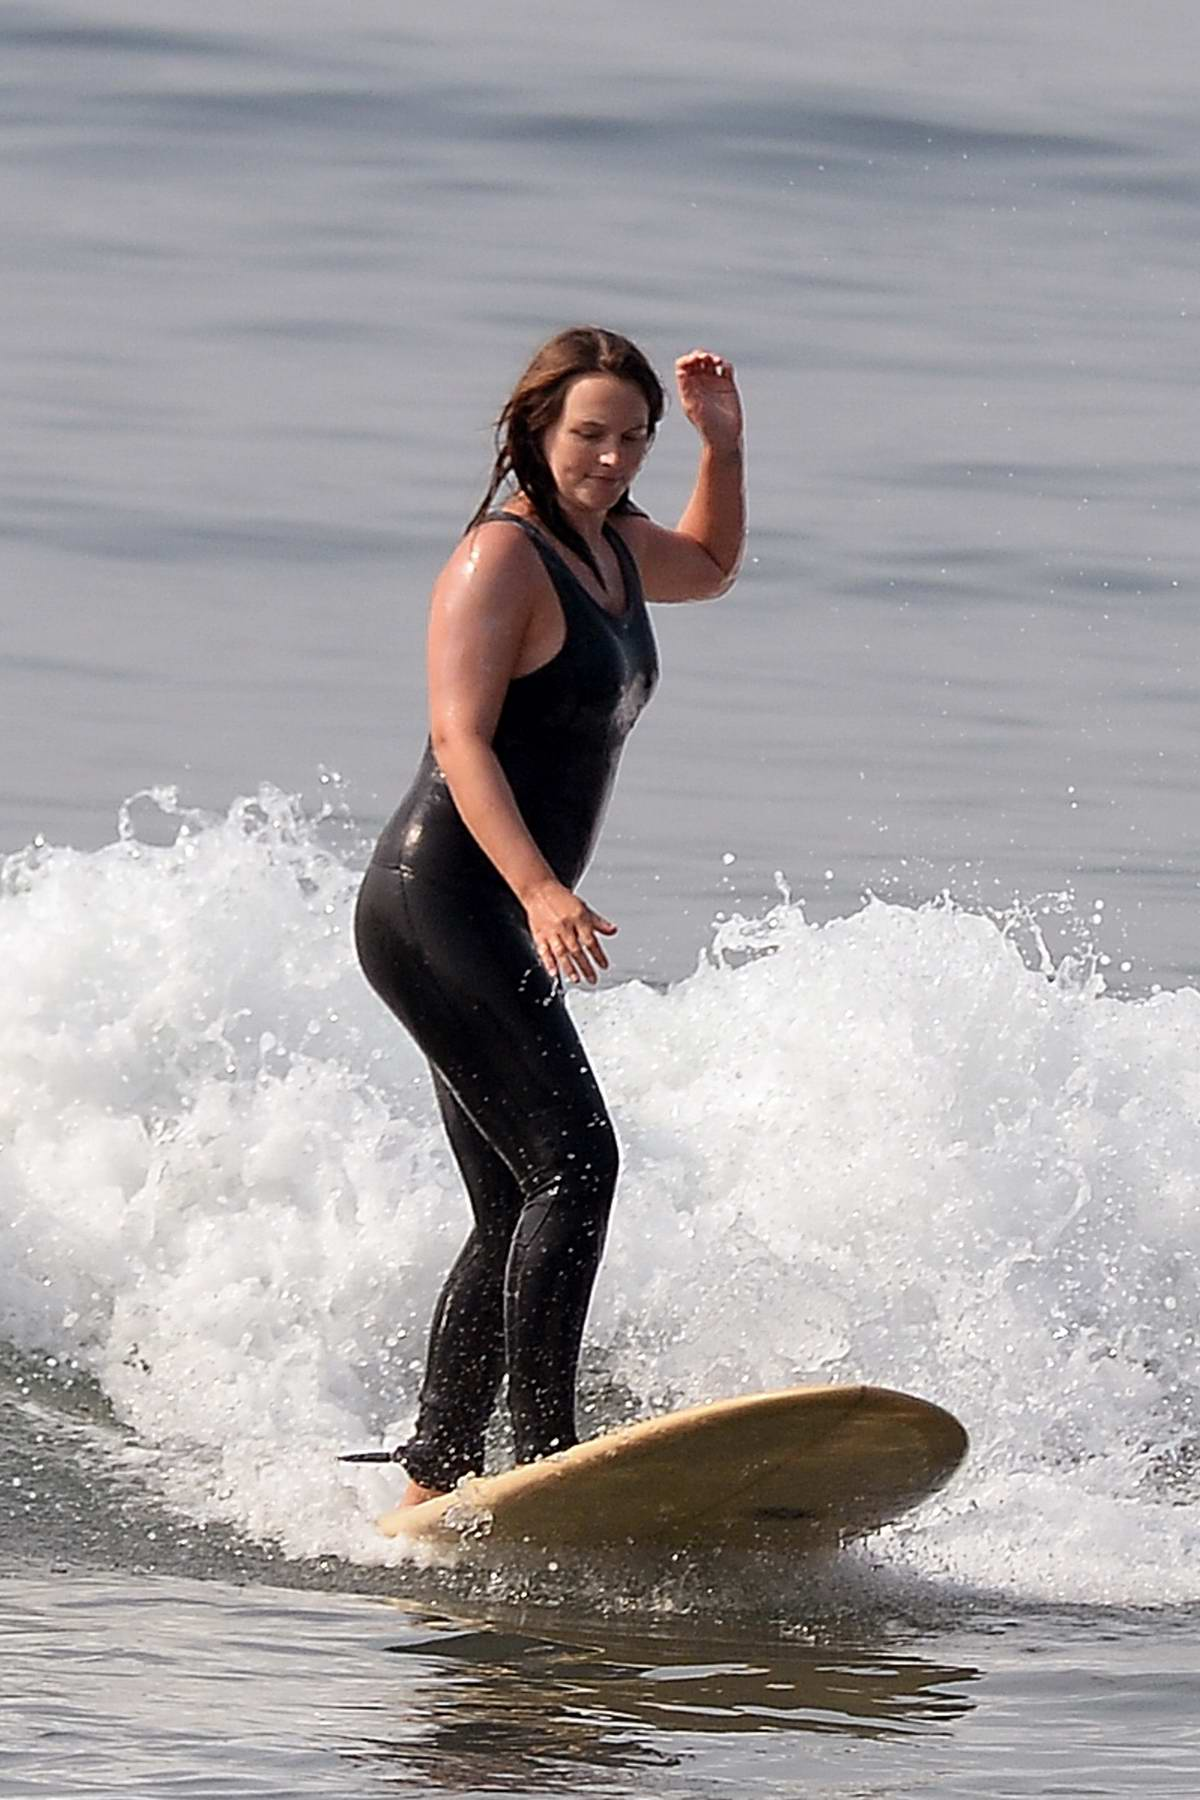 Leighton Meester shows off her impressive surfing skills in Malibu, California